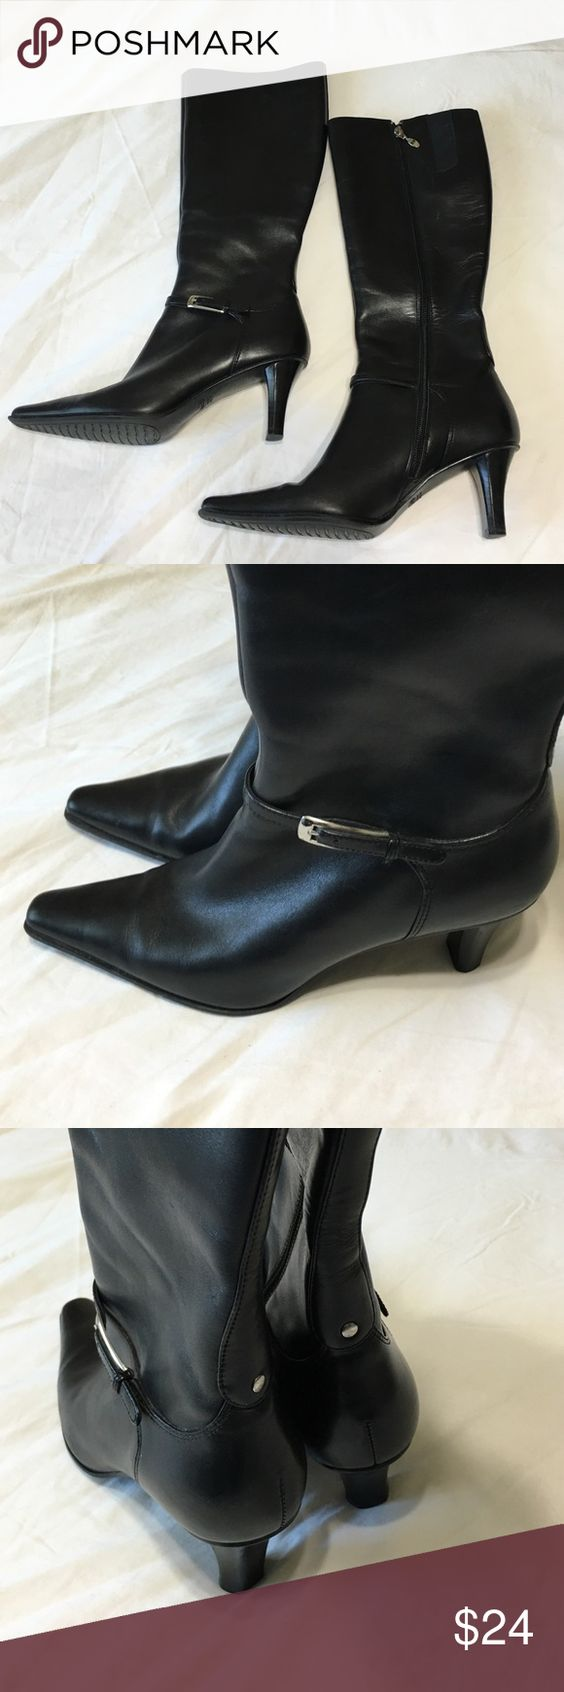 "Circa Joan & David 365 Boots Comfy Leather Mid-calf inside zip, low adjustable silver buckle across front, 3"" covered heel, 14"" in back/high above heel, pointed toe boots. In good condition!! Joan & David Shoes Heeled Boots"